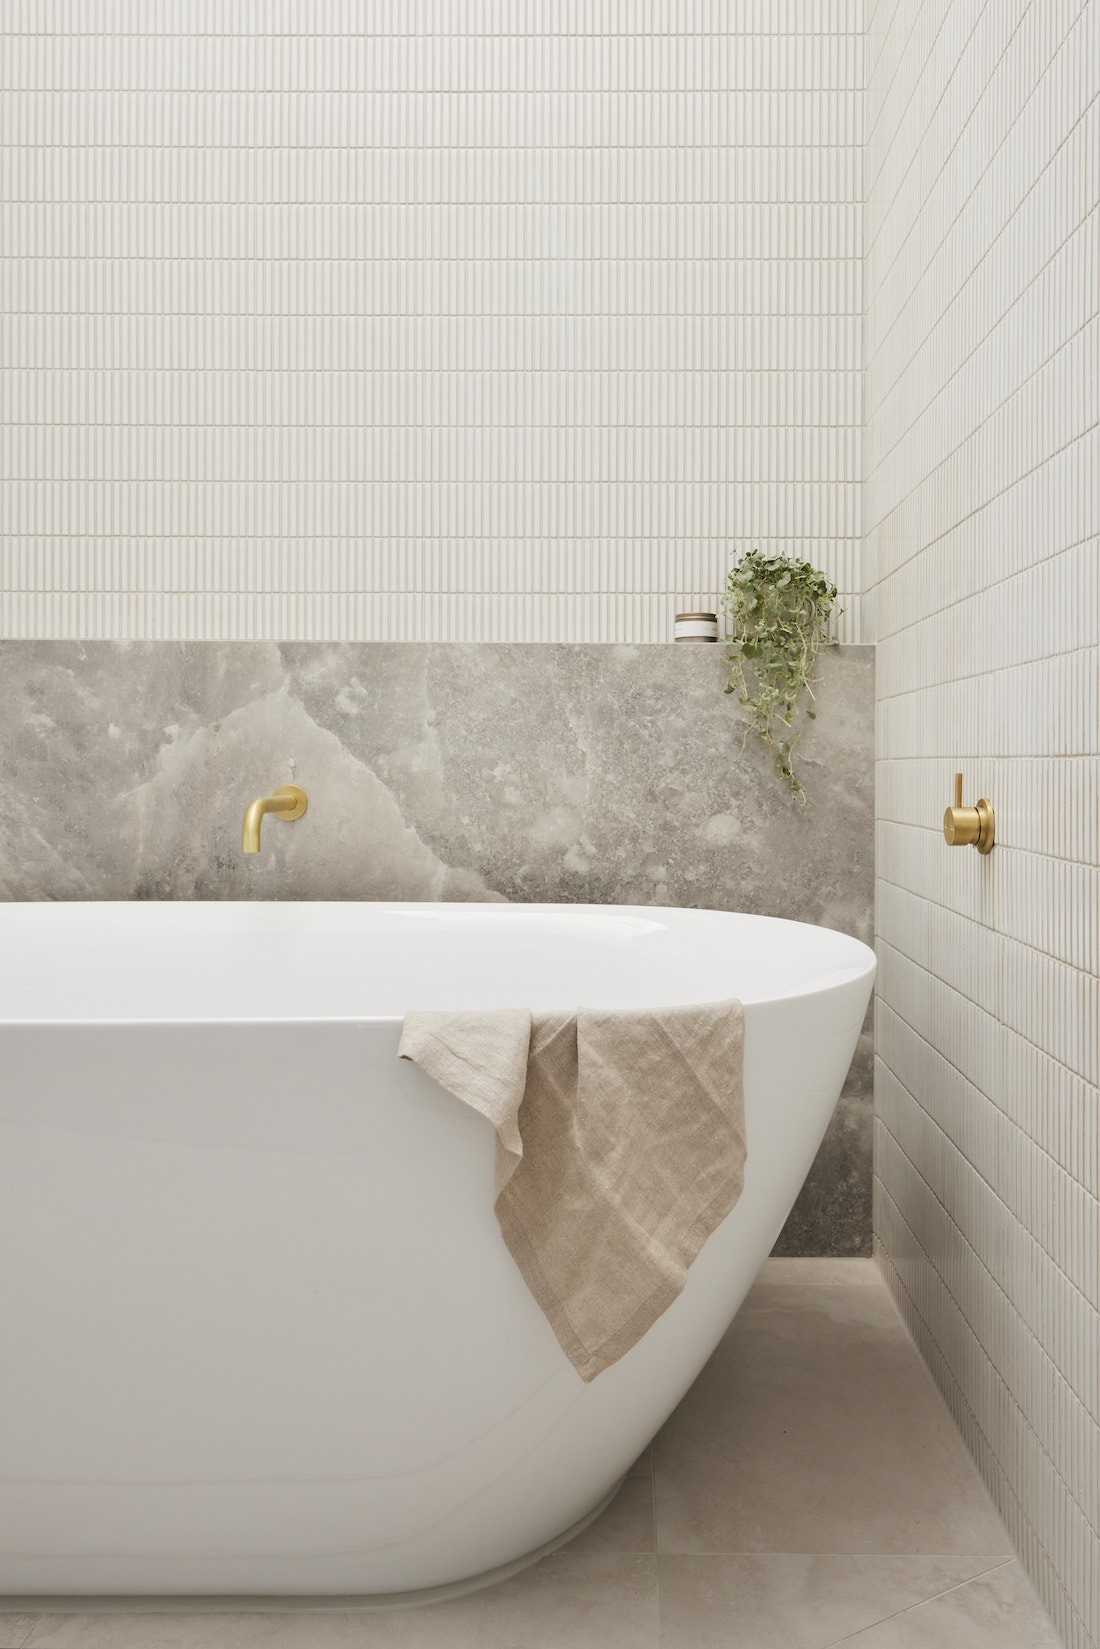 Curved bath with marble look tiles and white kit kat tiles